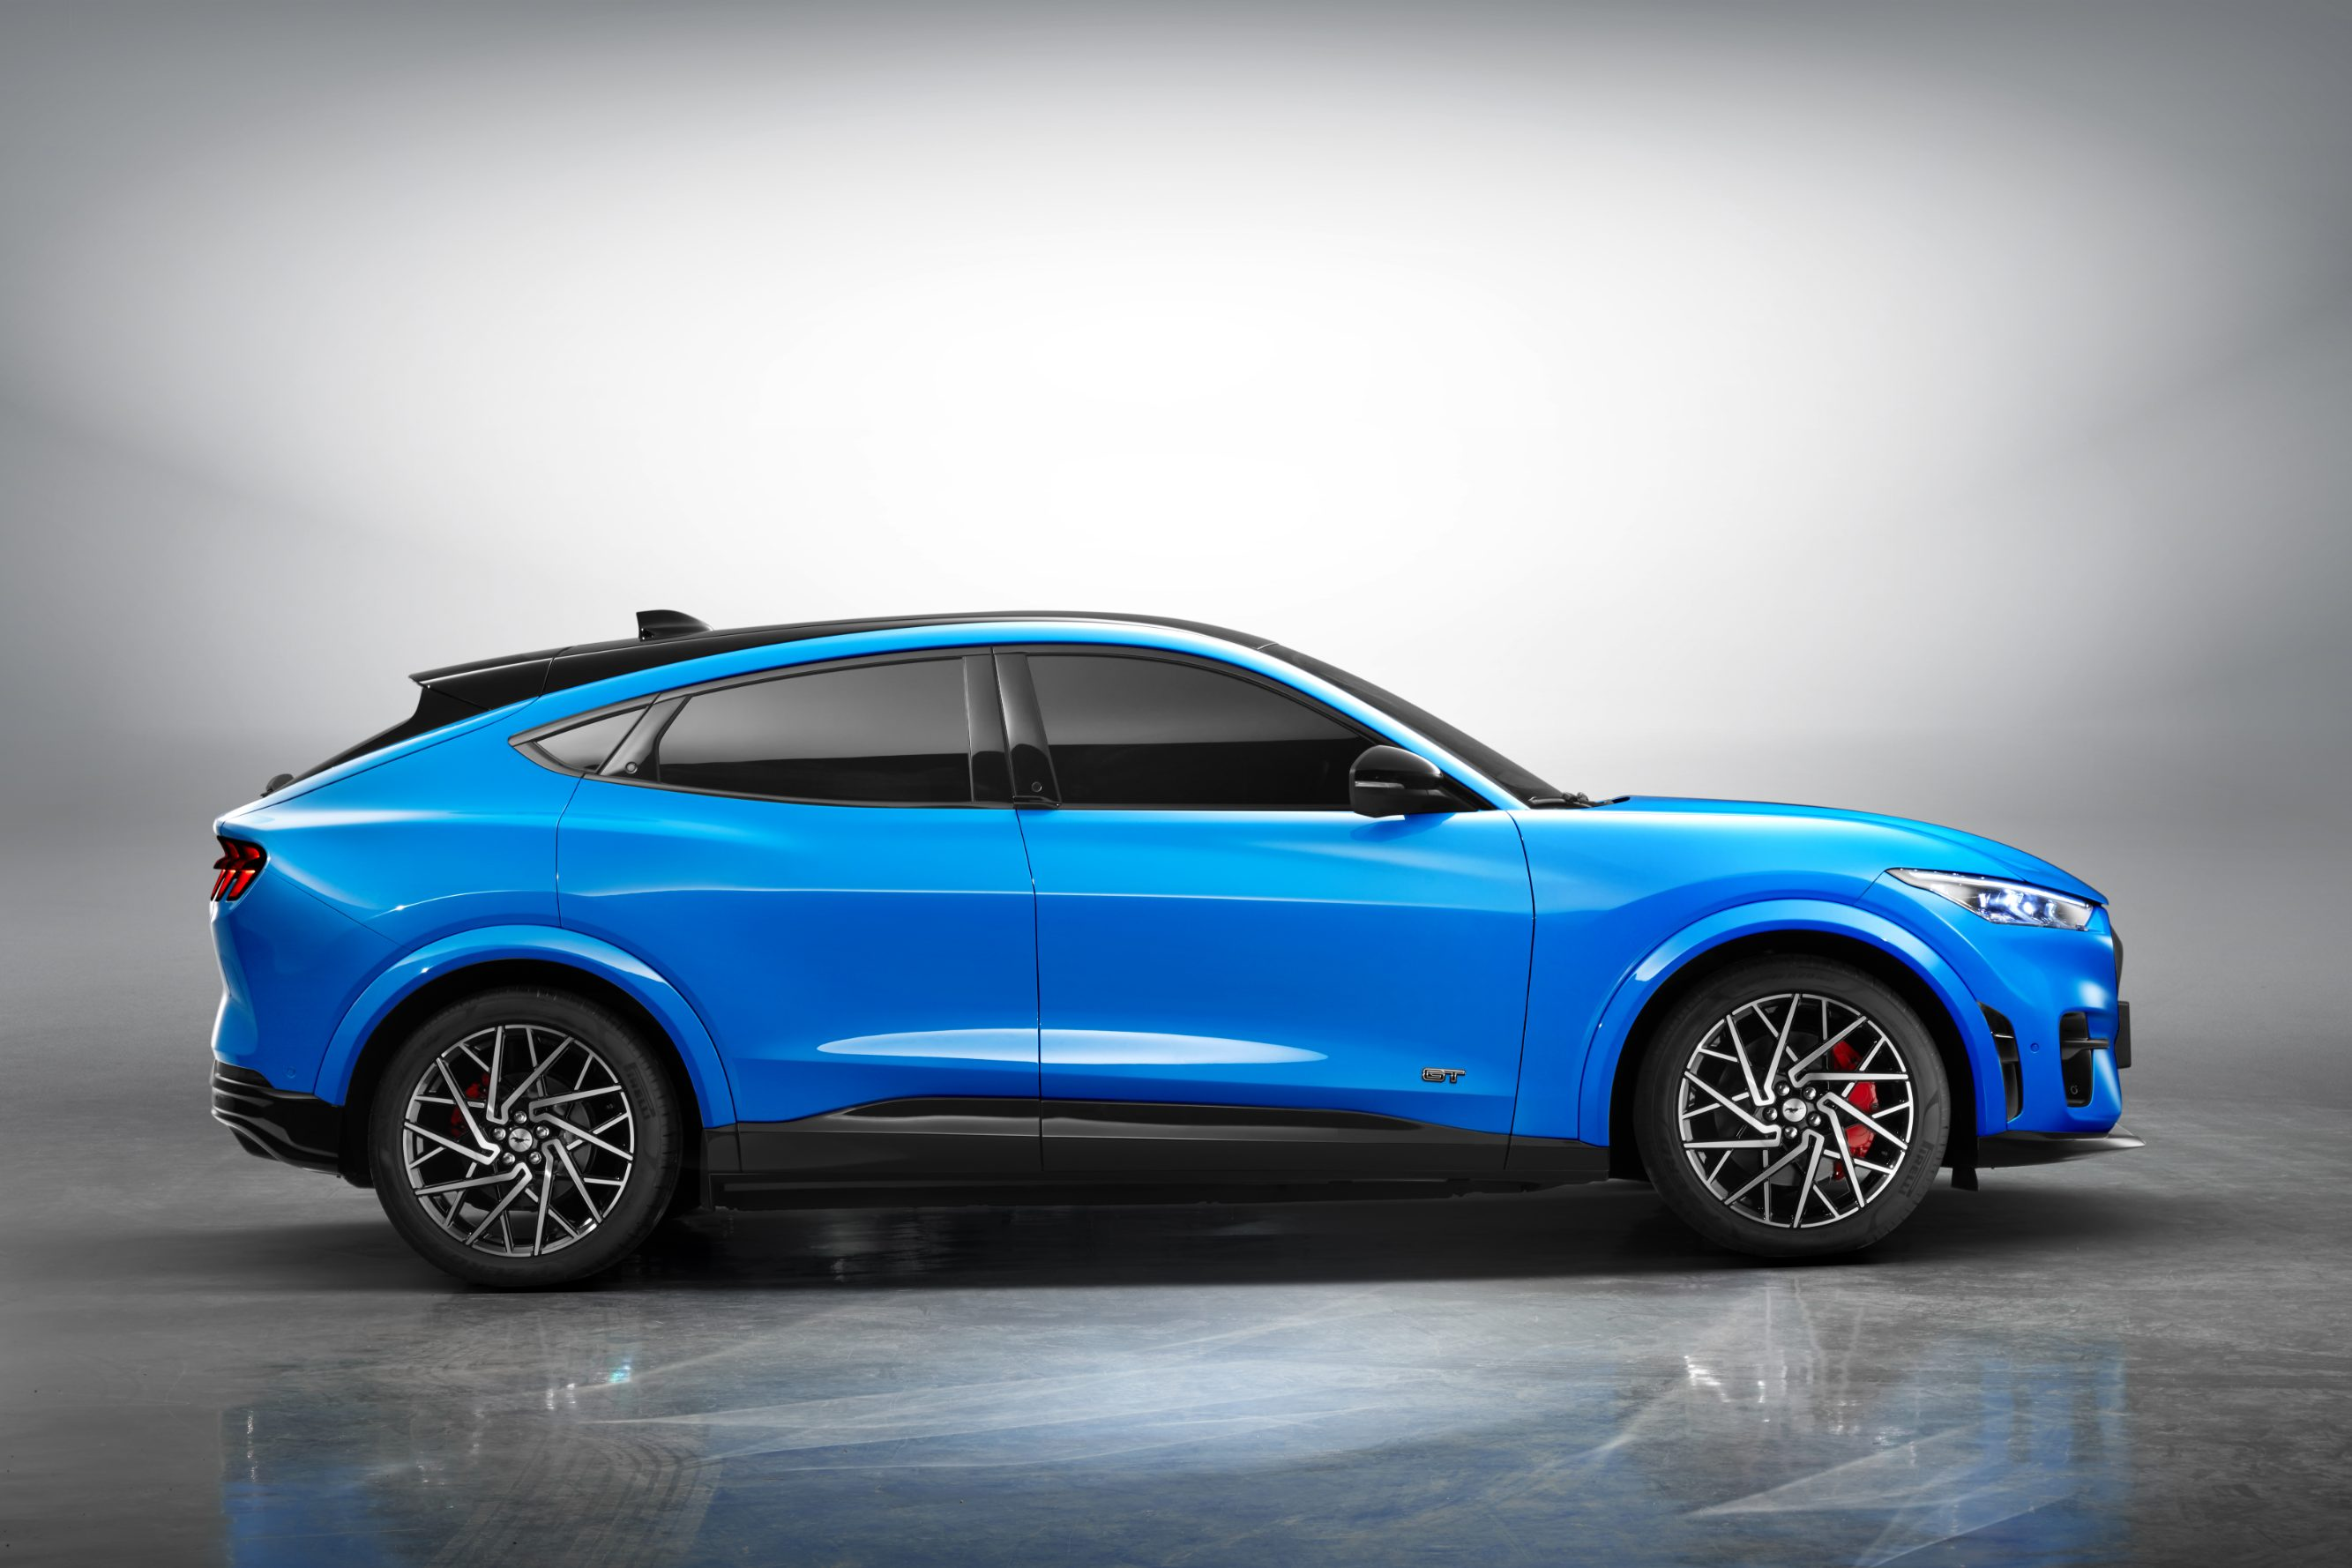 Ford_to_Manufacture_Mustang_Mach-E_in_China_for_Local_Customers_01.jpg